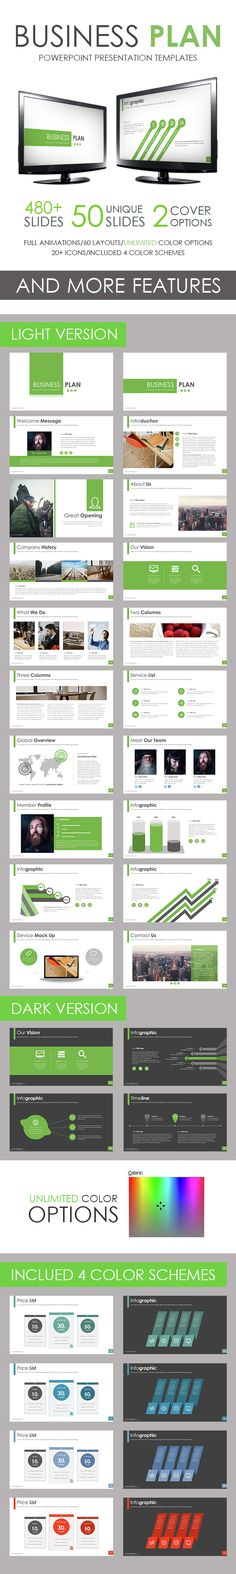 Business proposal powerpoint template pinterest business business plan powerpoint template wajeb Gallery